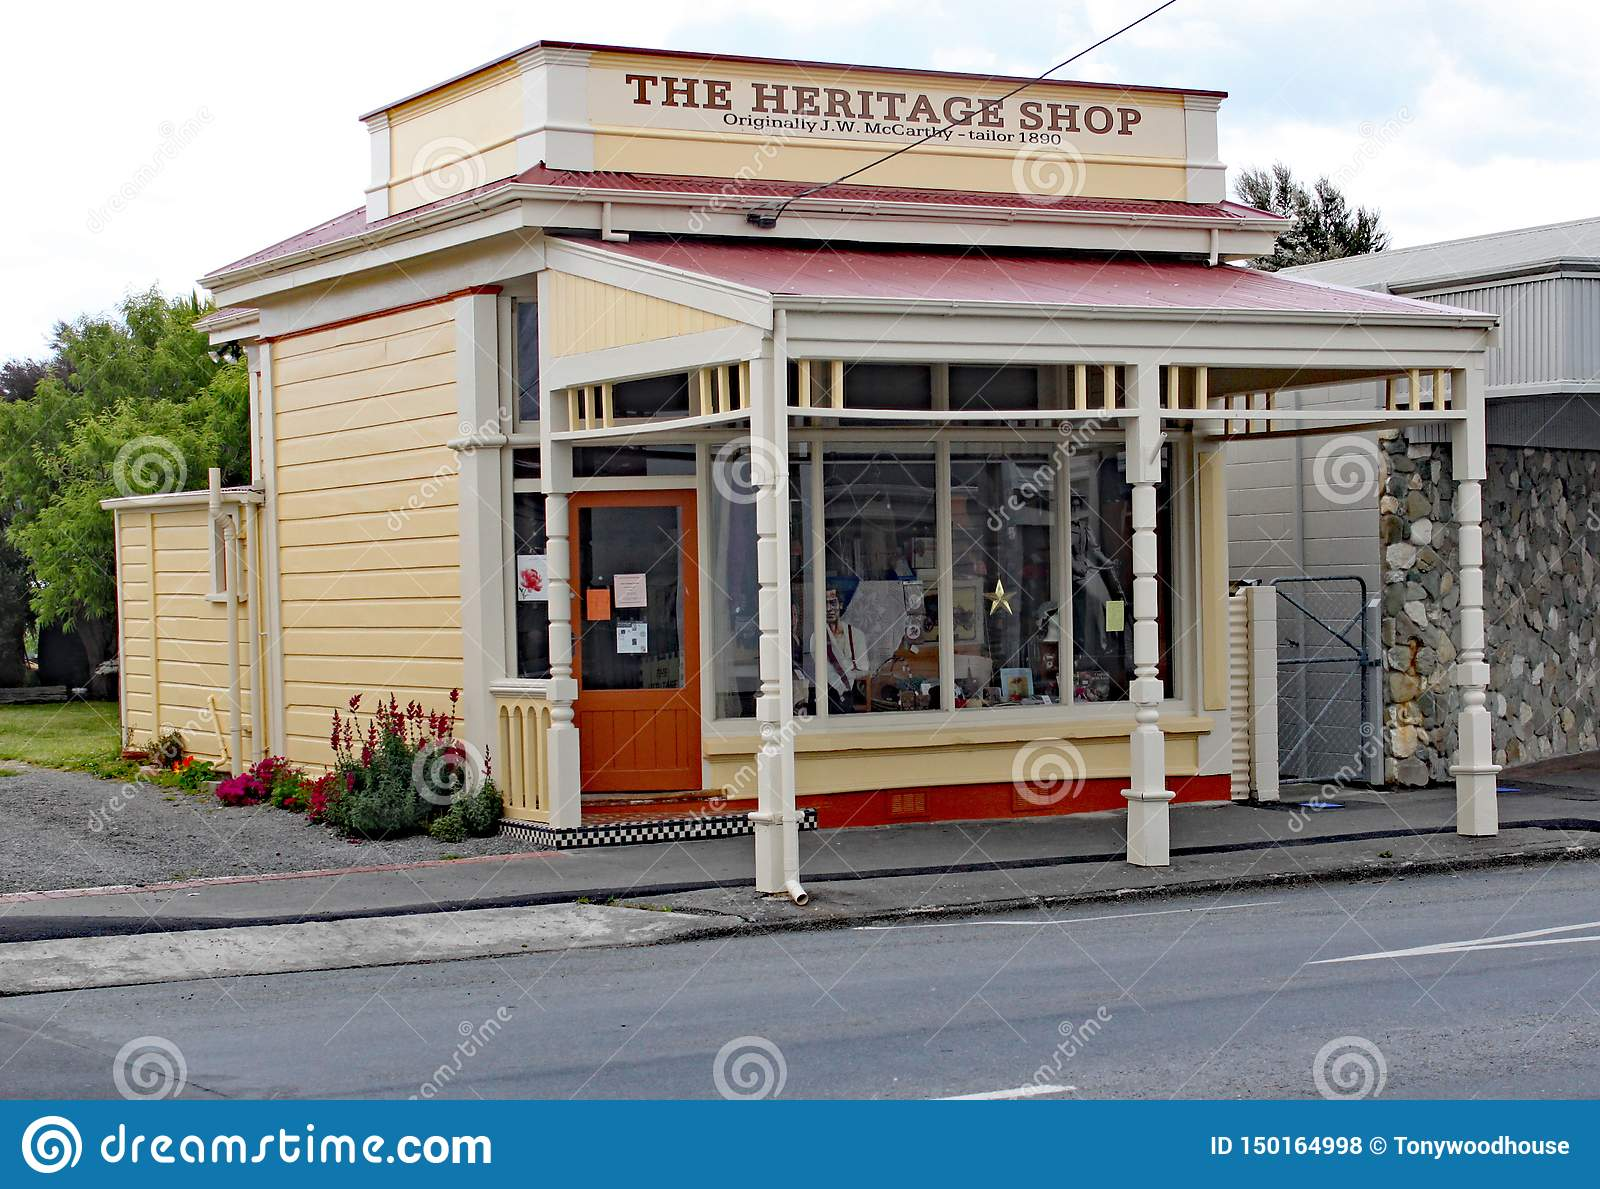 The Heritage shop on the main square in martinborough, New Zealand